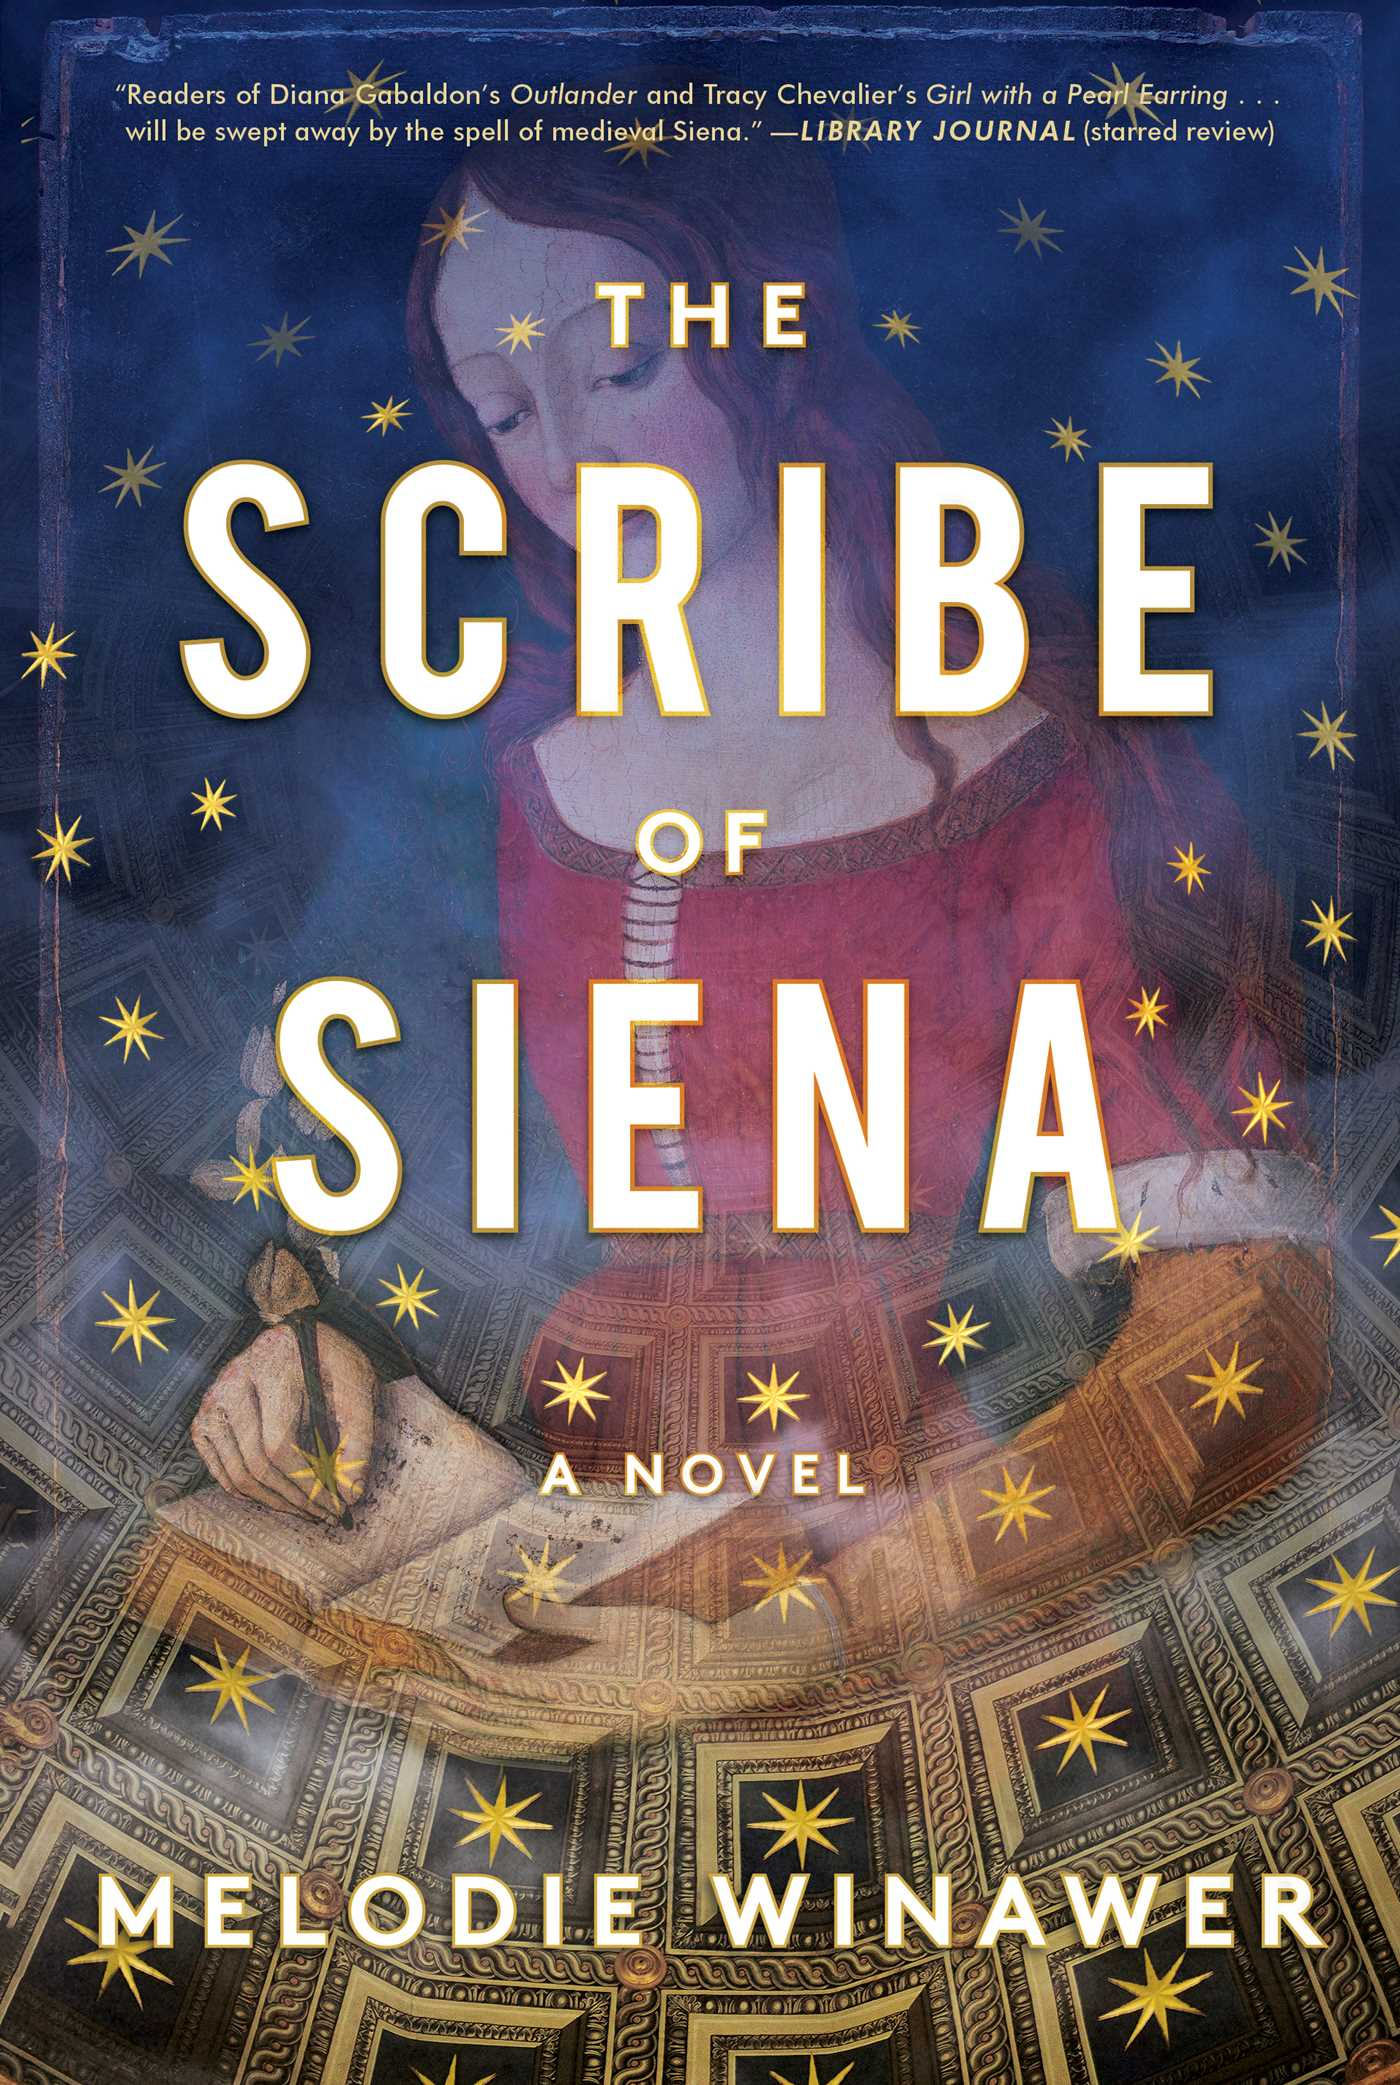 The scribe of siena 9781501152252 hr